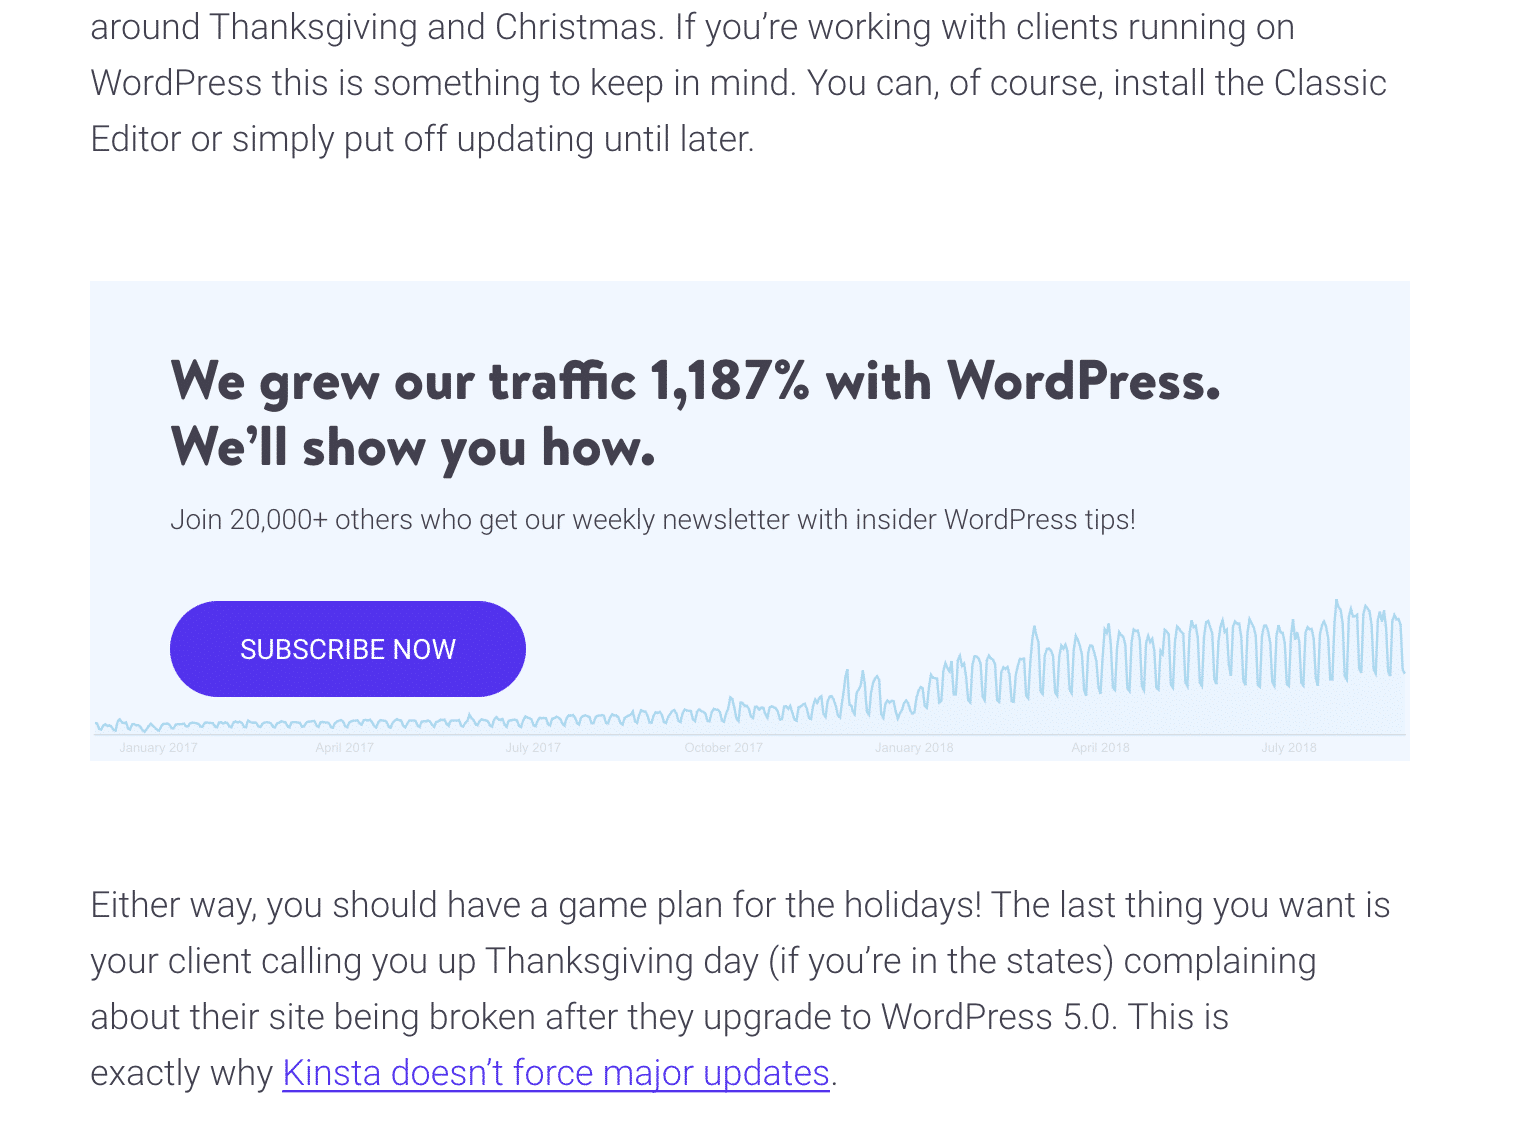 Kinsta blog post email capture form